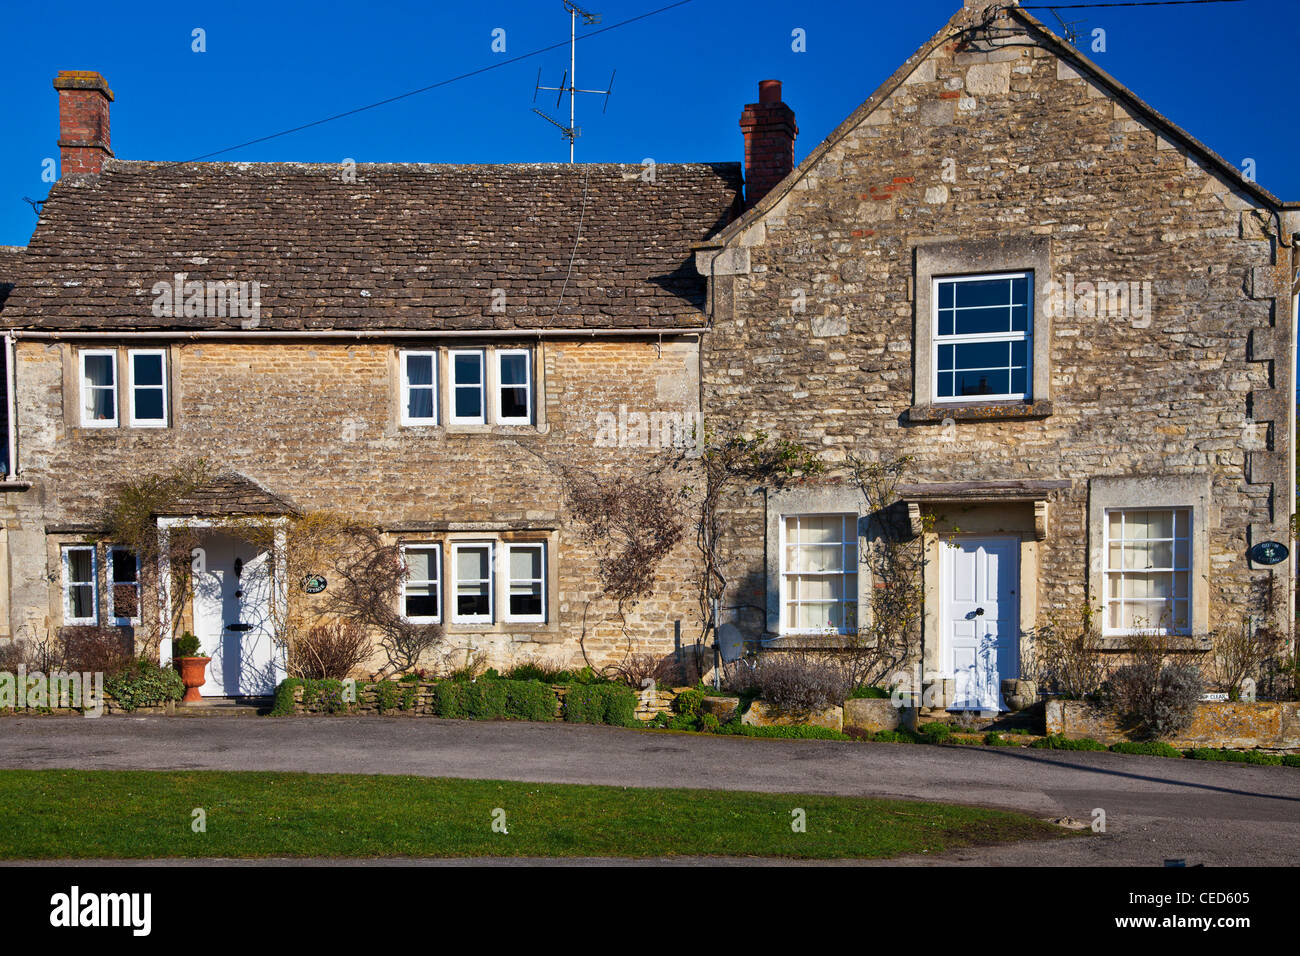 Typical traditional Cotswold stone cottages in the English village of Biddestone, Wiltshire, England, UK - Stock Image